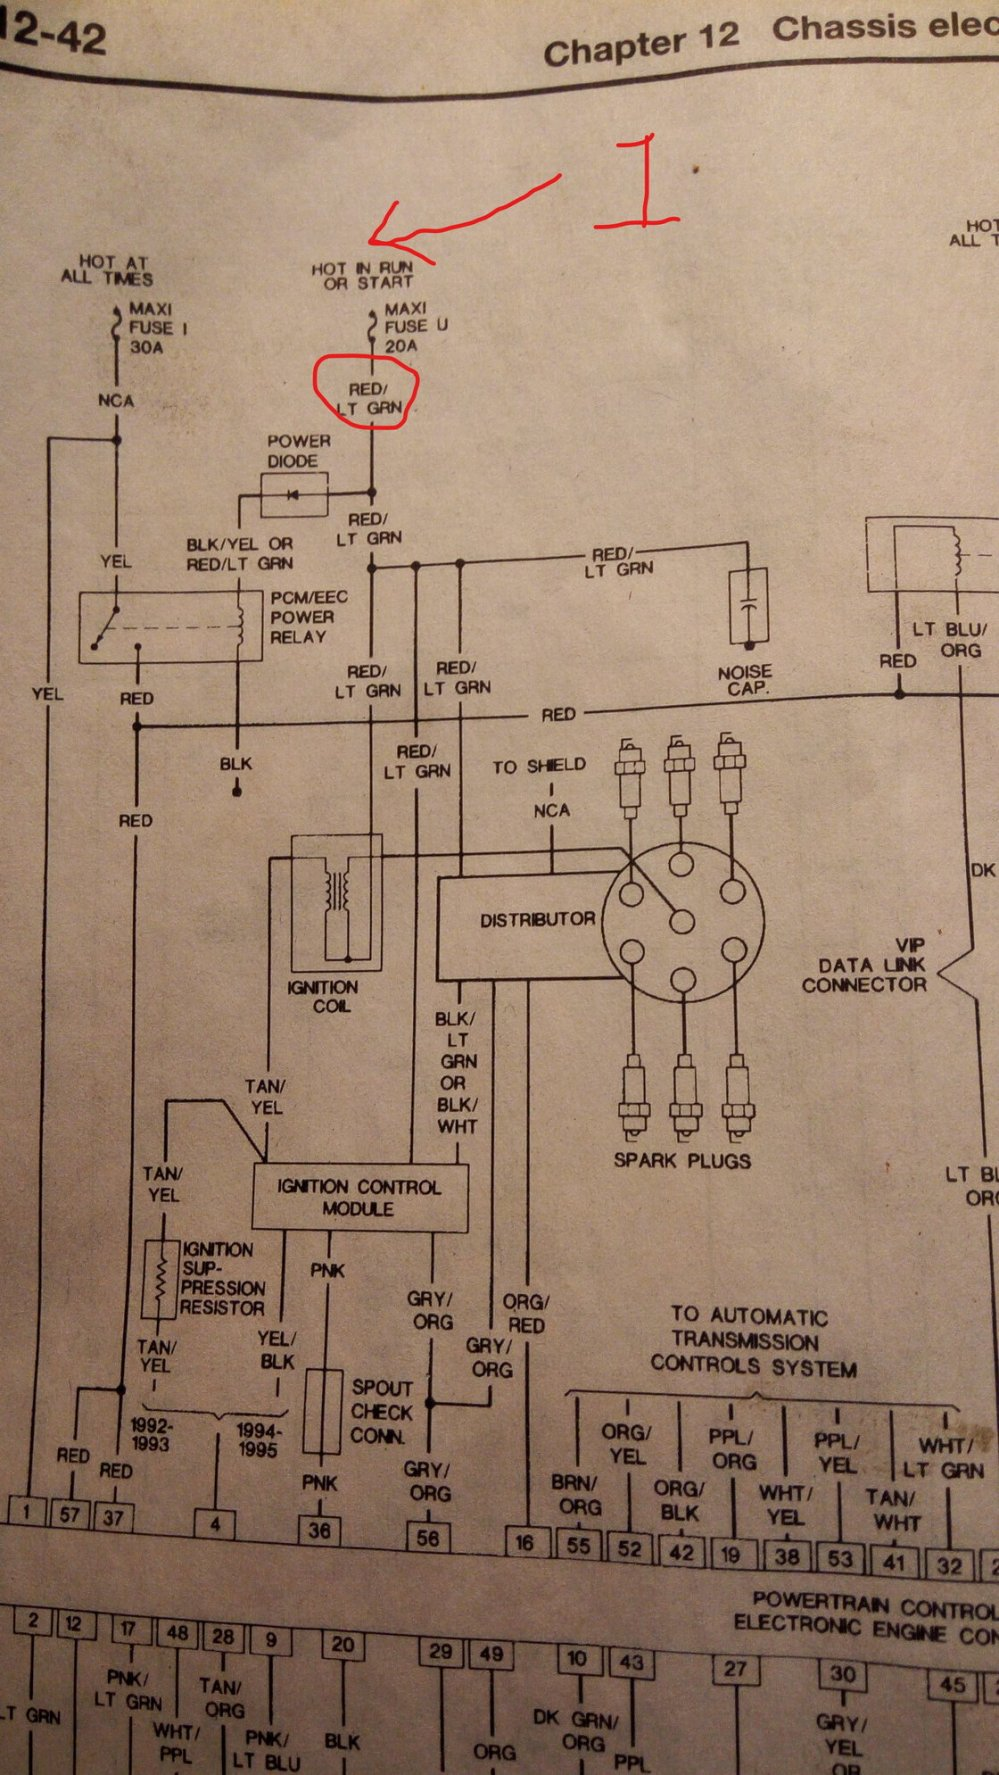 medium resolution of hello all i m hoping you can help the wiring diagrams i have access to are very limited i have a no spark issue on a vehicle that sat for a few years